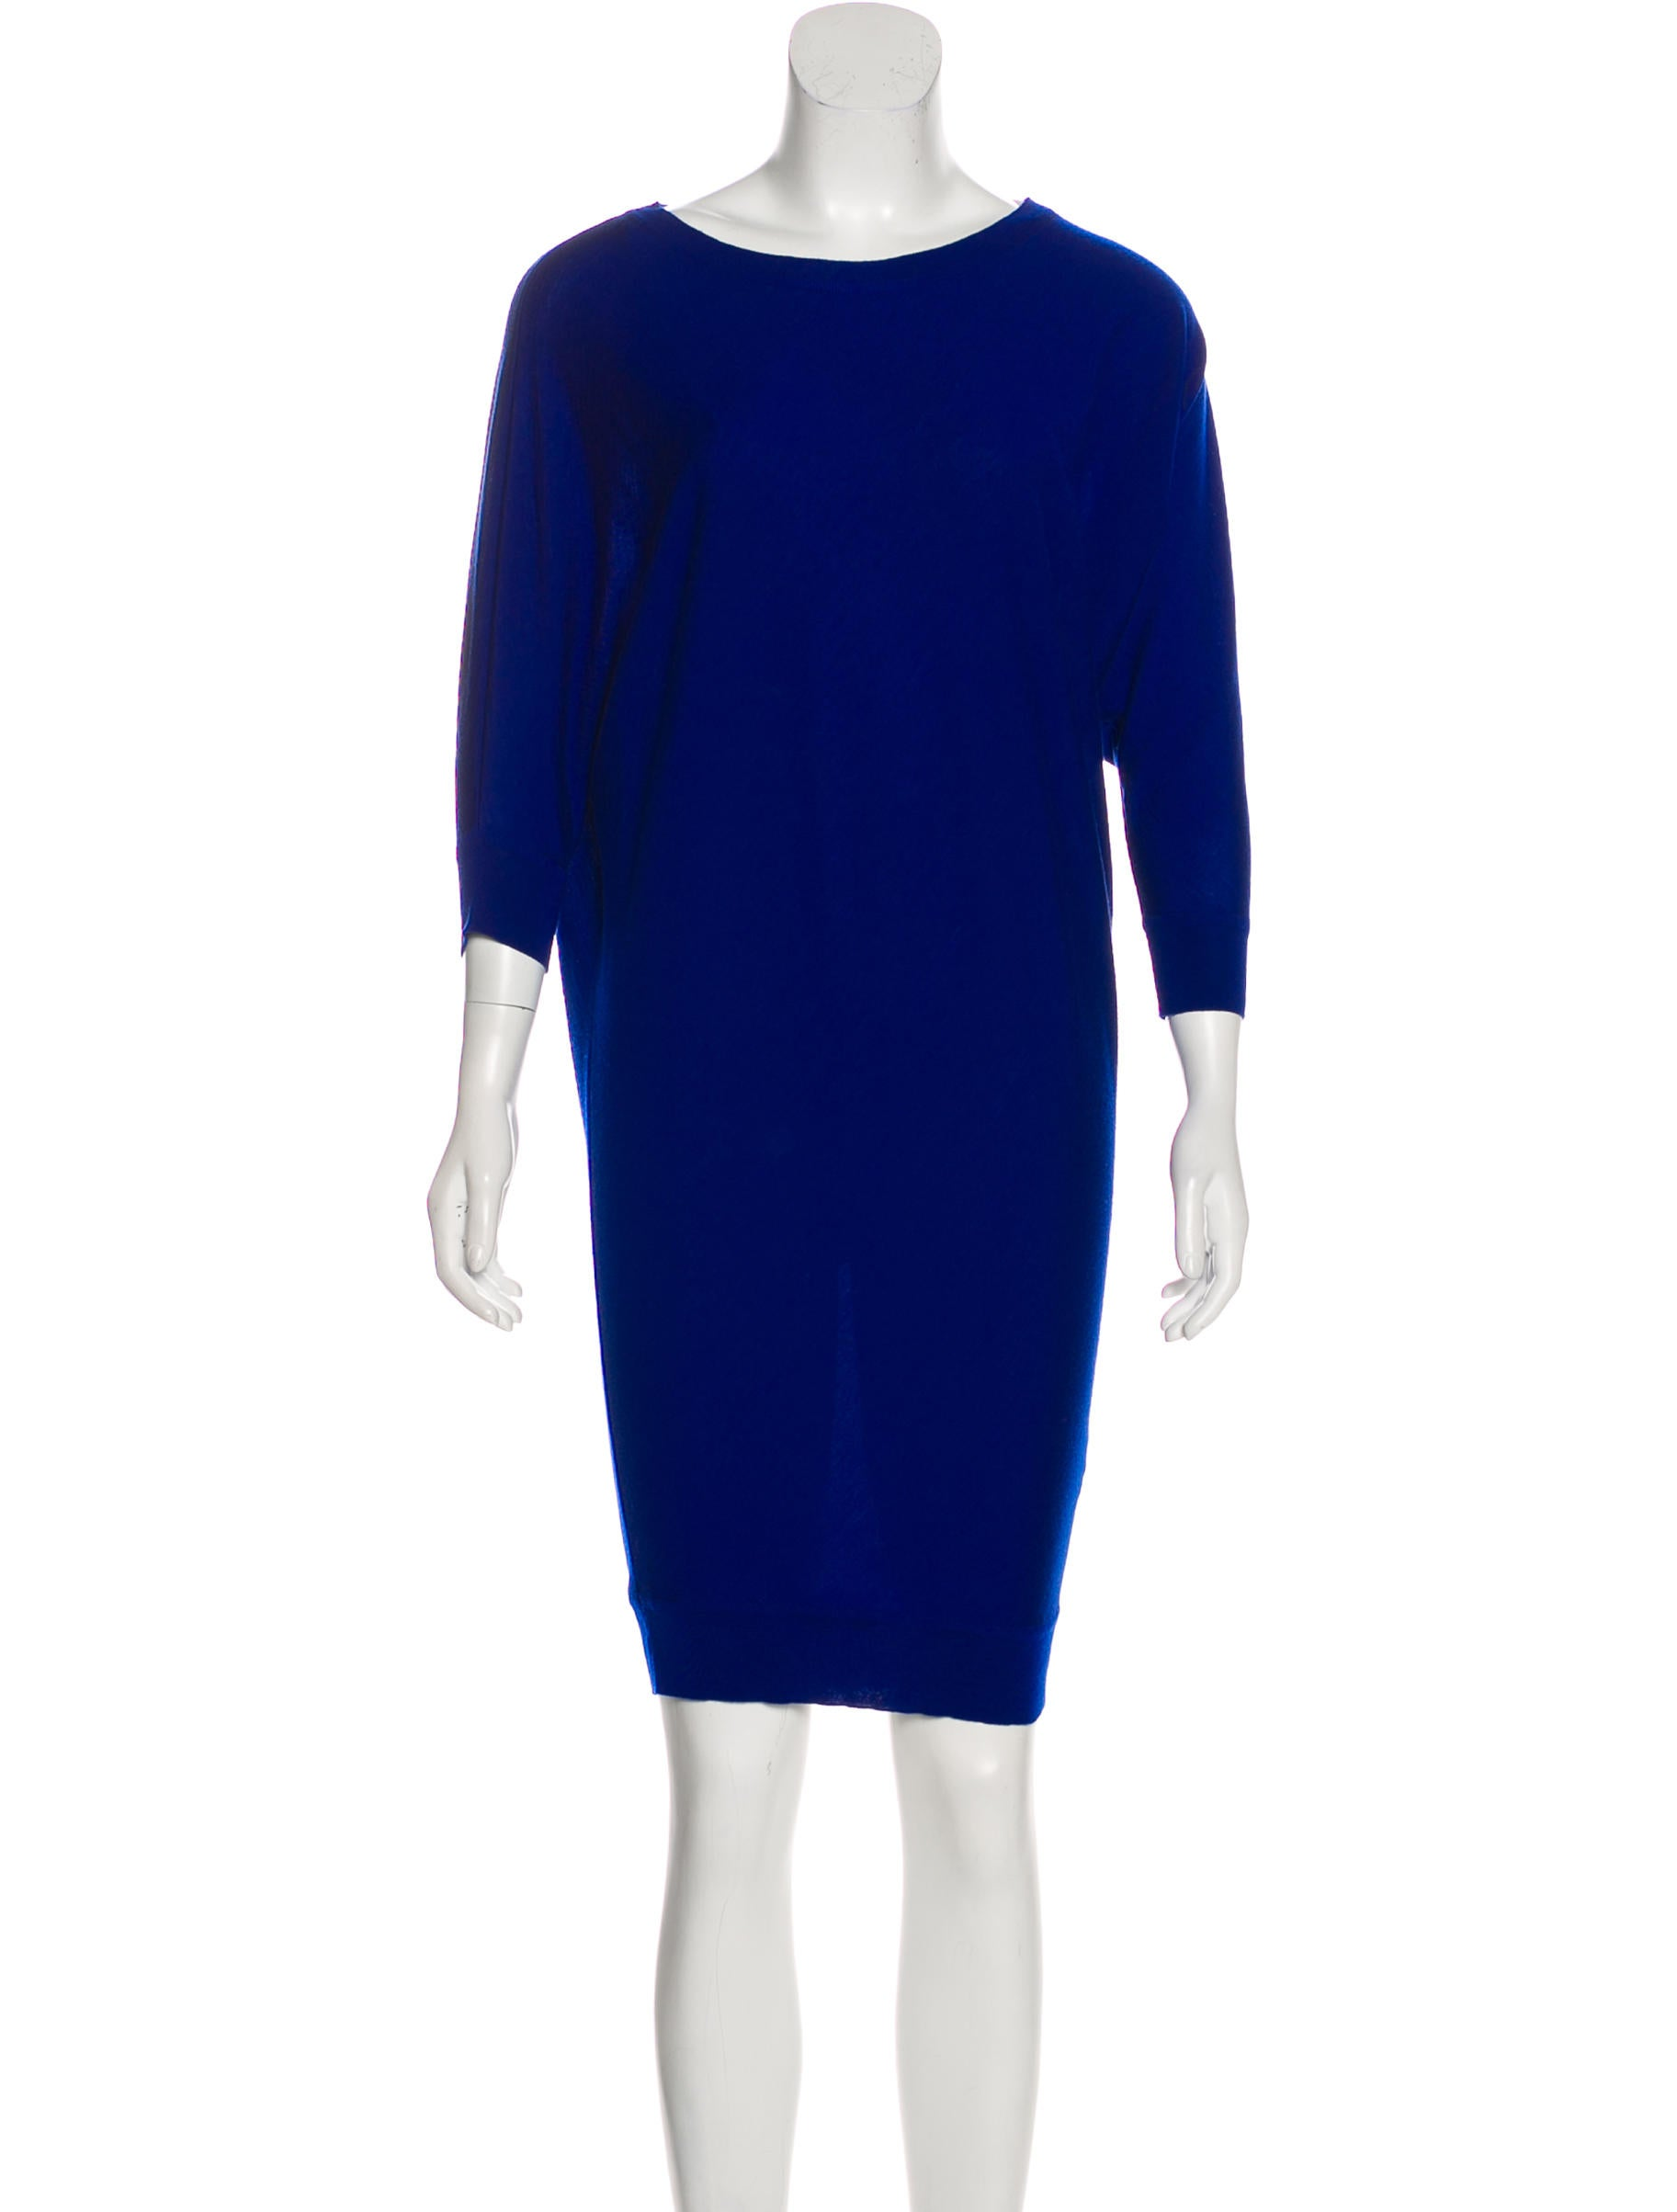 82ef7f1469a Alexander McQueen Sweater Knit Dress - Clothing - ALE51551